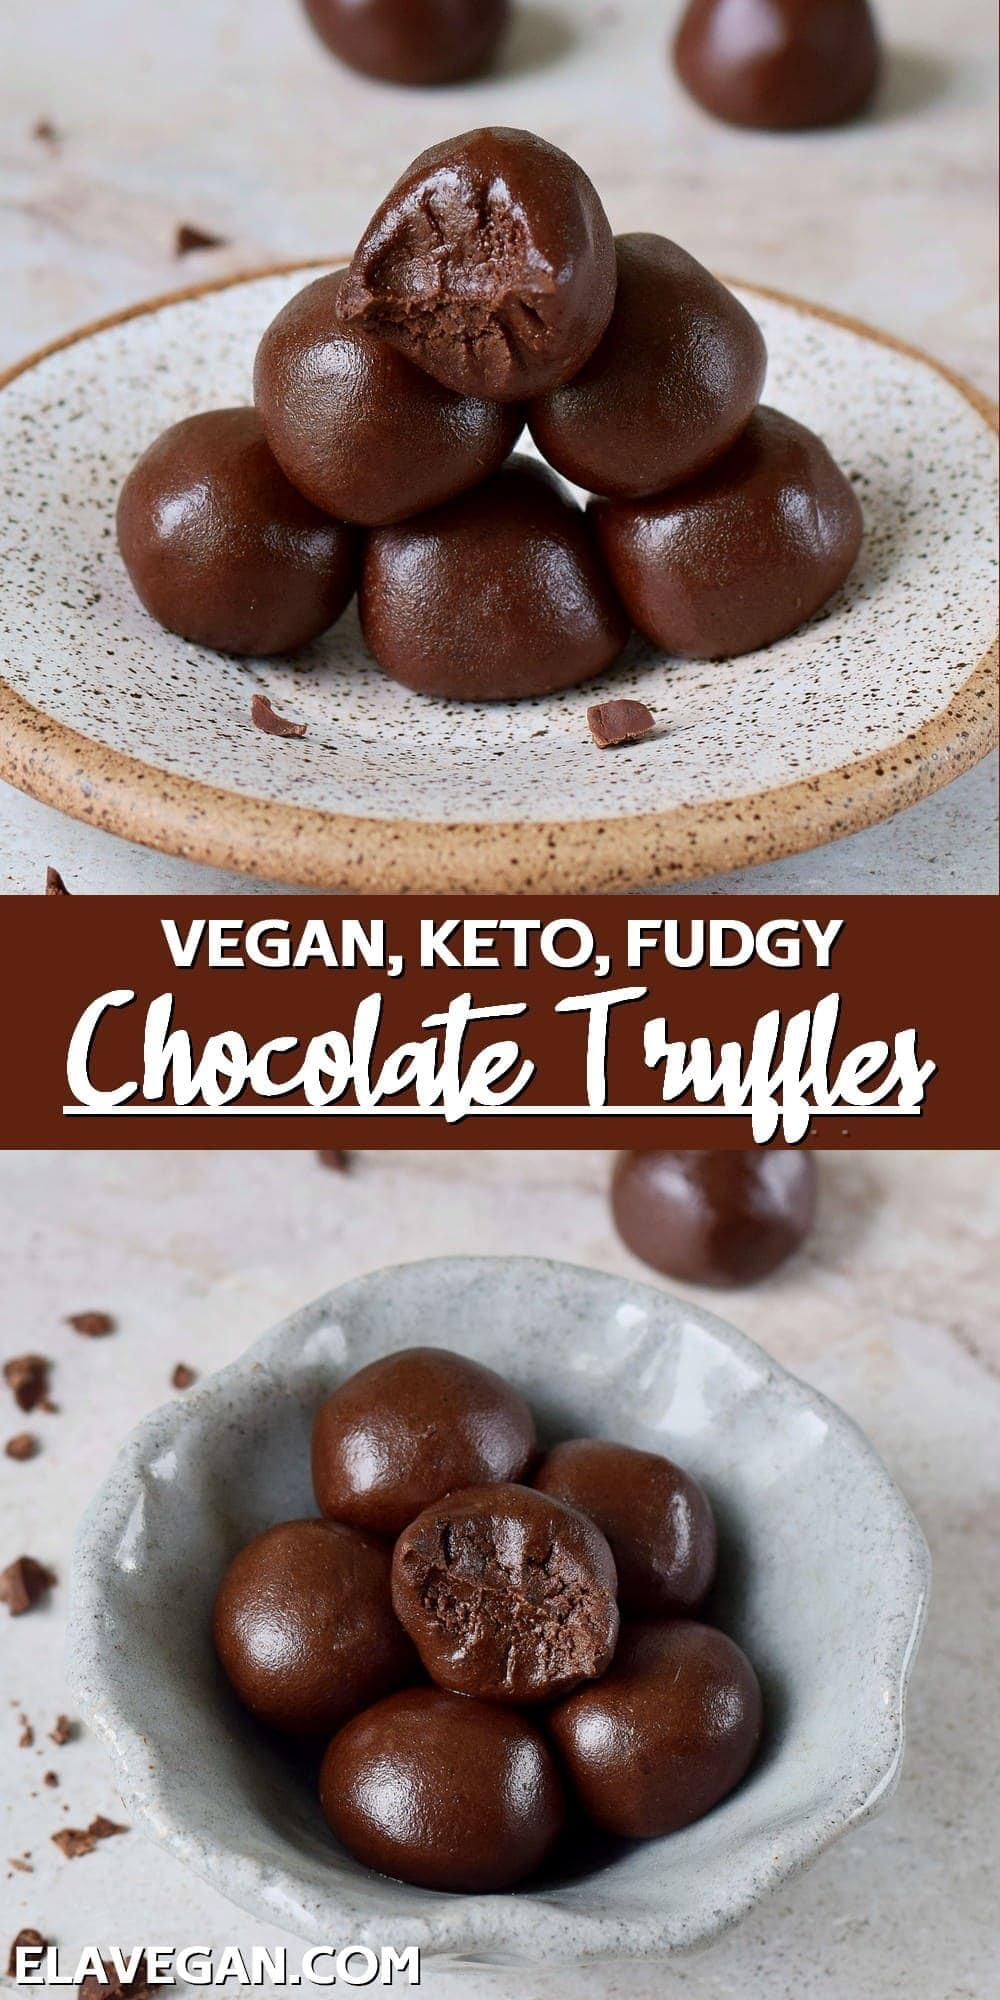 Pinterest Collage Vegan Keto Fudgy Chocolate Truffles